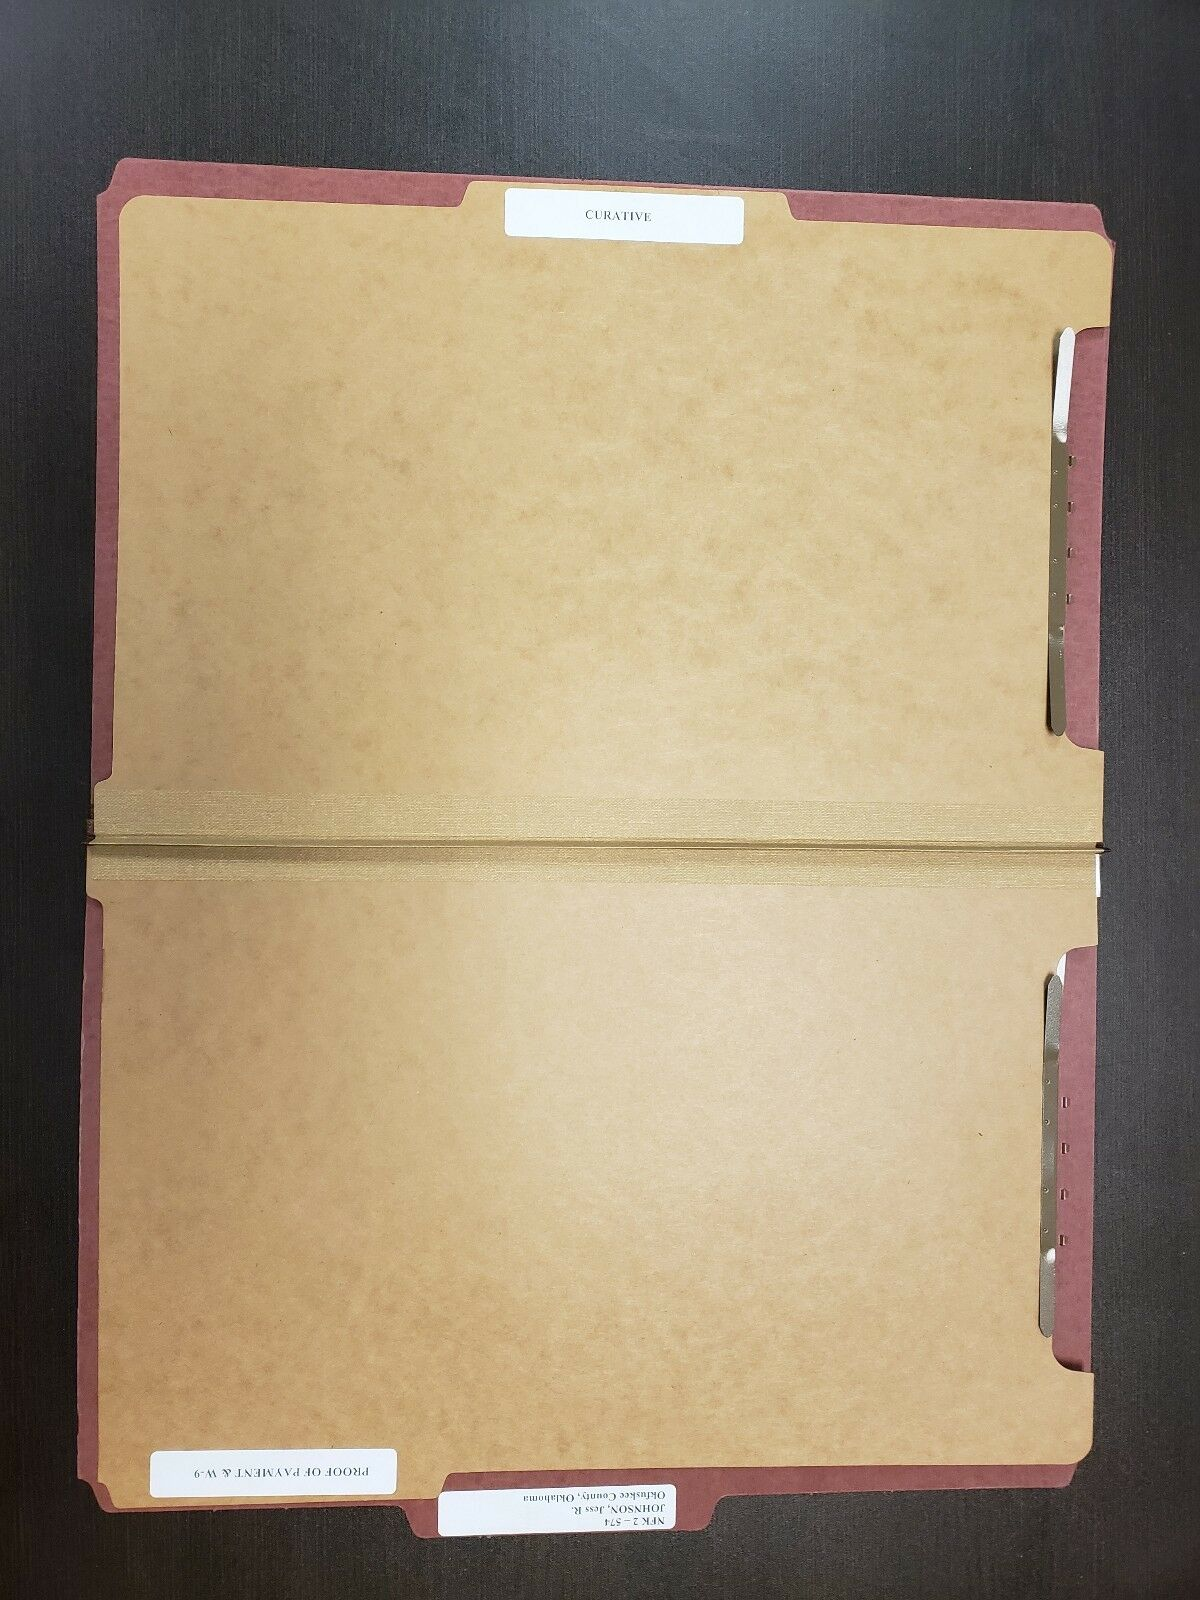 Letter ONE BOX 10 Smead Smd-14097 Straight-line Top Tab Classification Folder